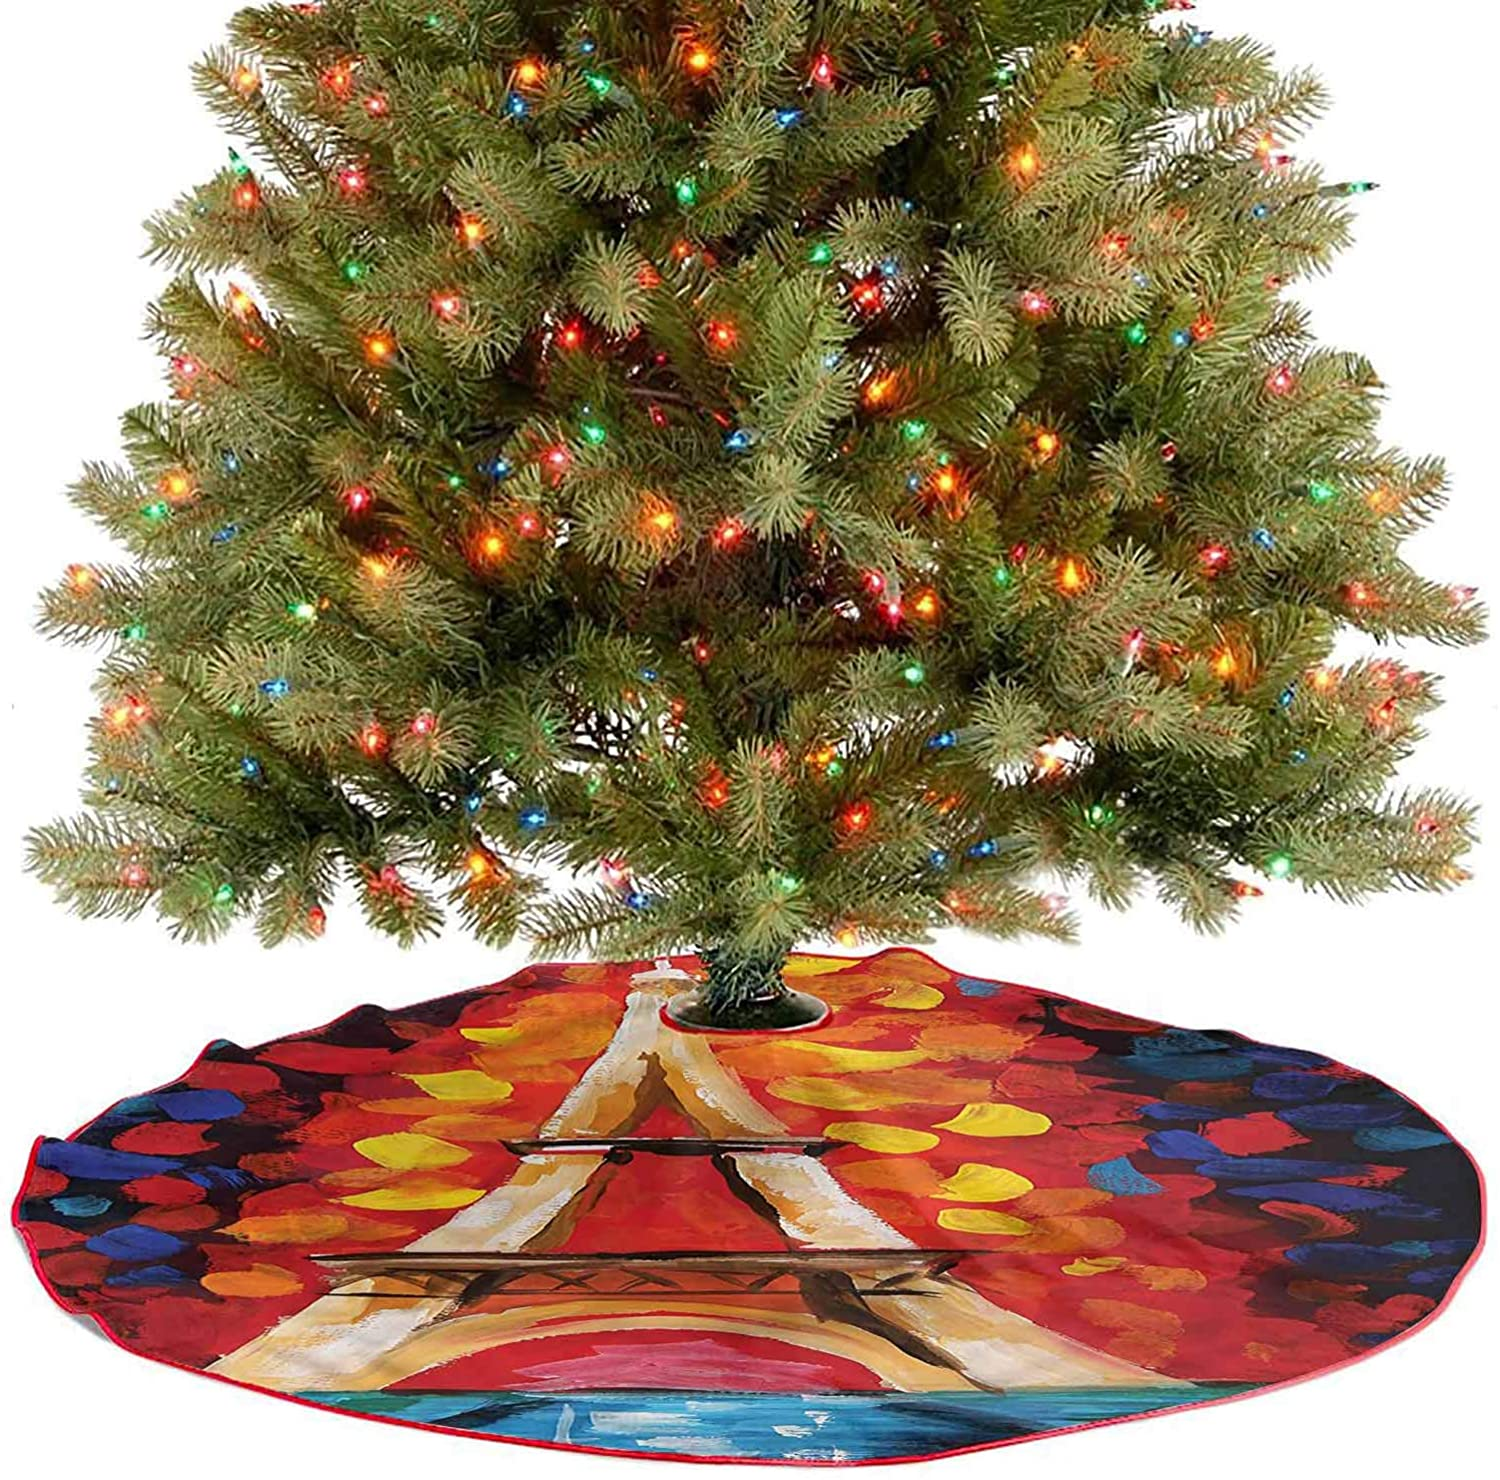 ThinkingPower Christmas Tree Mat Paris France Romantic Indoor Outdoor Decoration A Contemporary Look and Appeal Diameter - 36 Inch